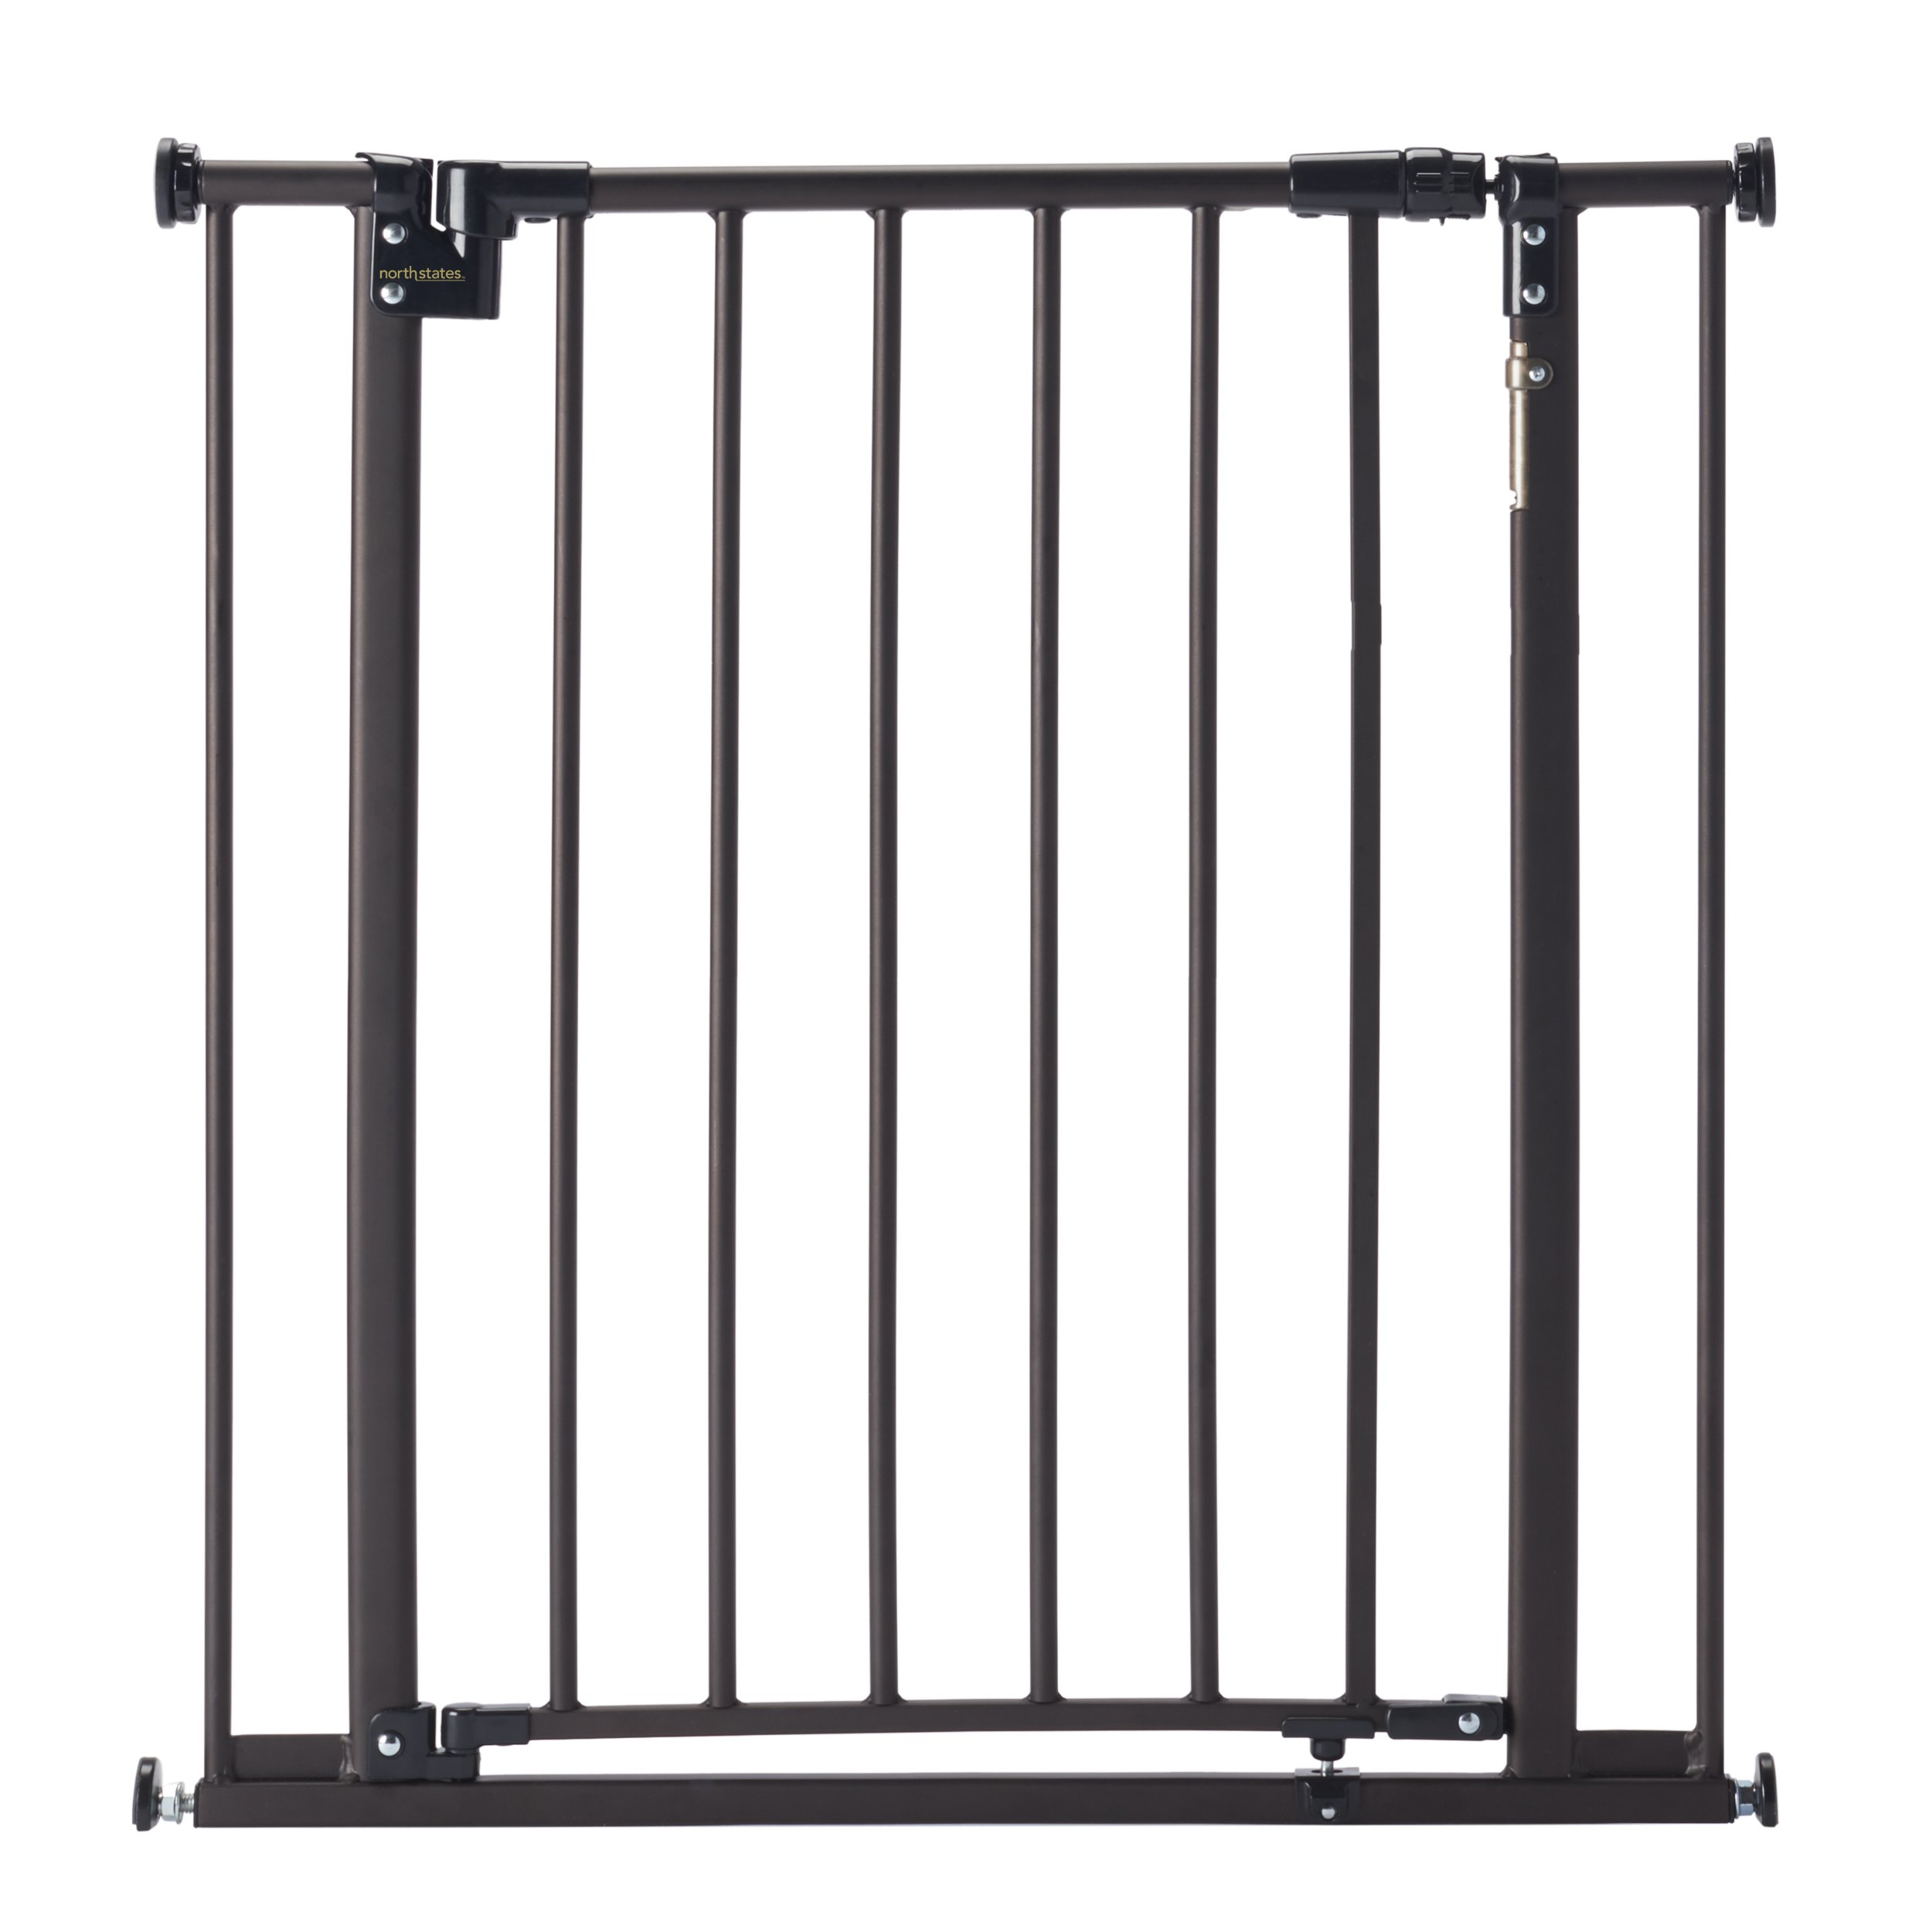 ''Light The Way Gate'' by North States: Light-Sensing LEDs add Extra Safety for gate Access at Night. Hardware and Pressure Mount. Fits Openings 28.5'' to 38.25'' Wide (29.3'' Tall, Bronze)